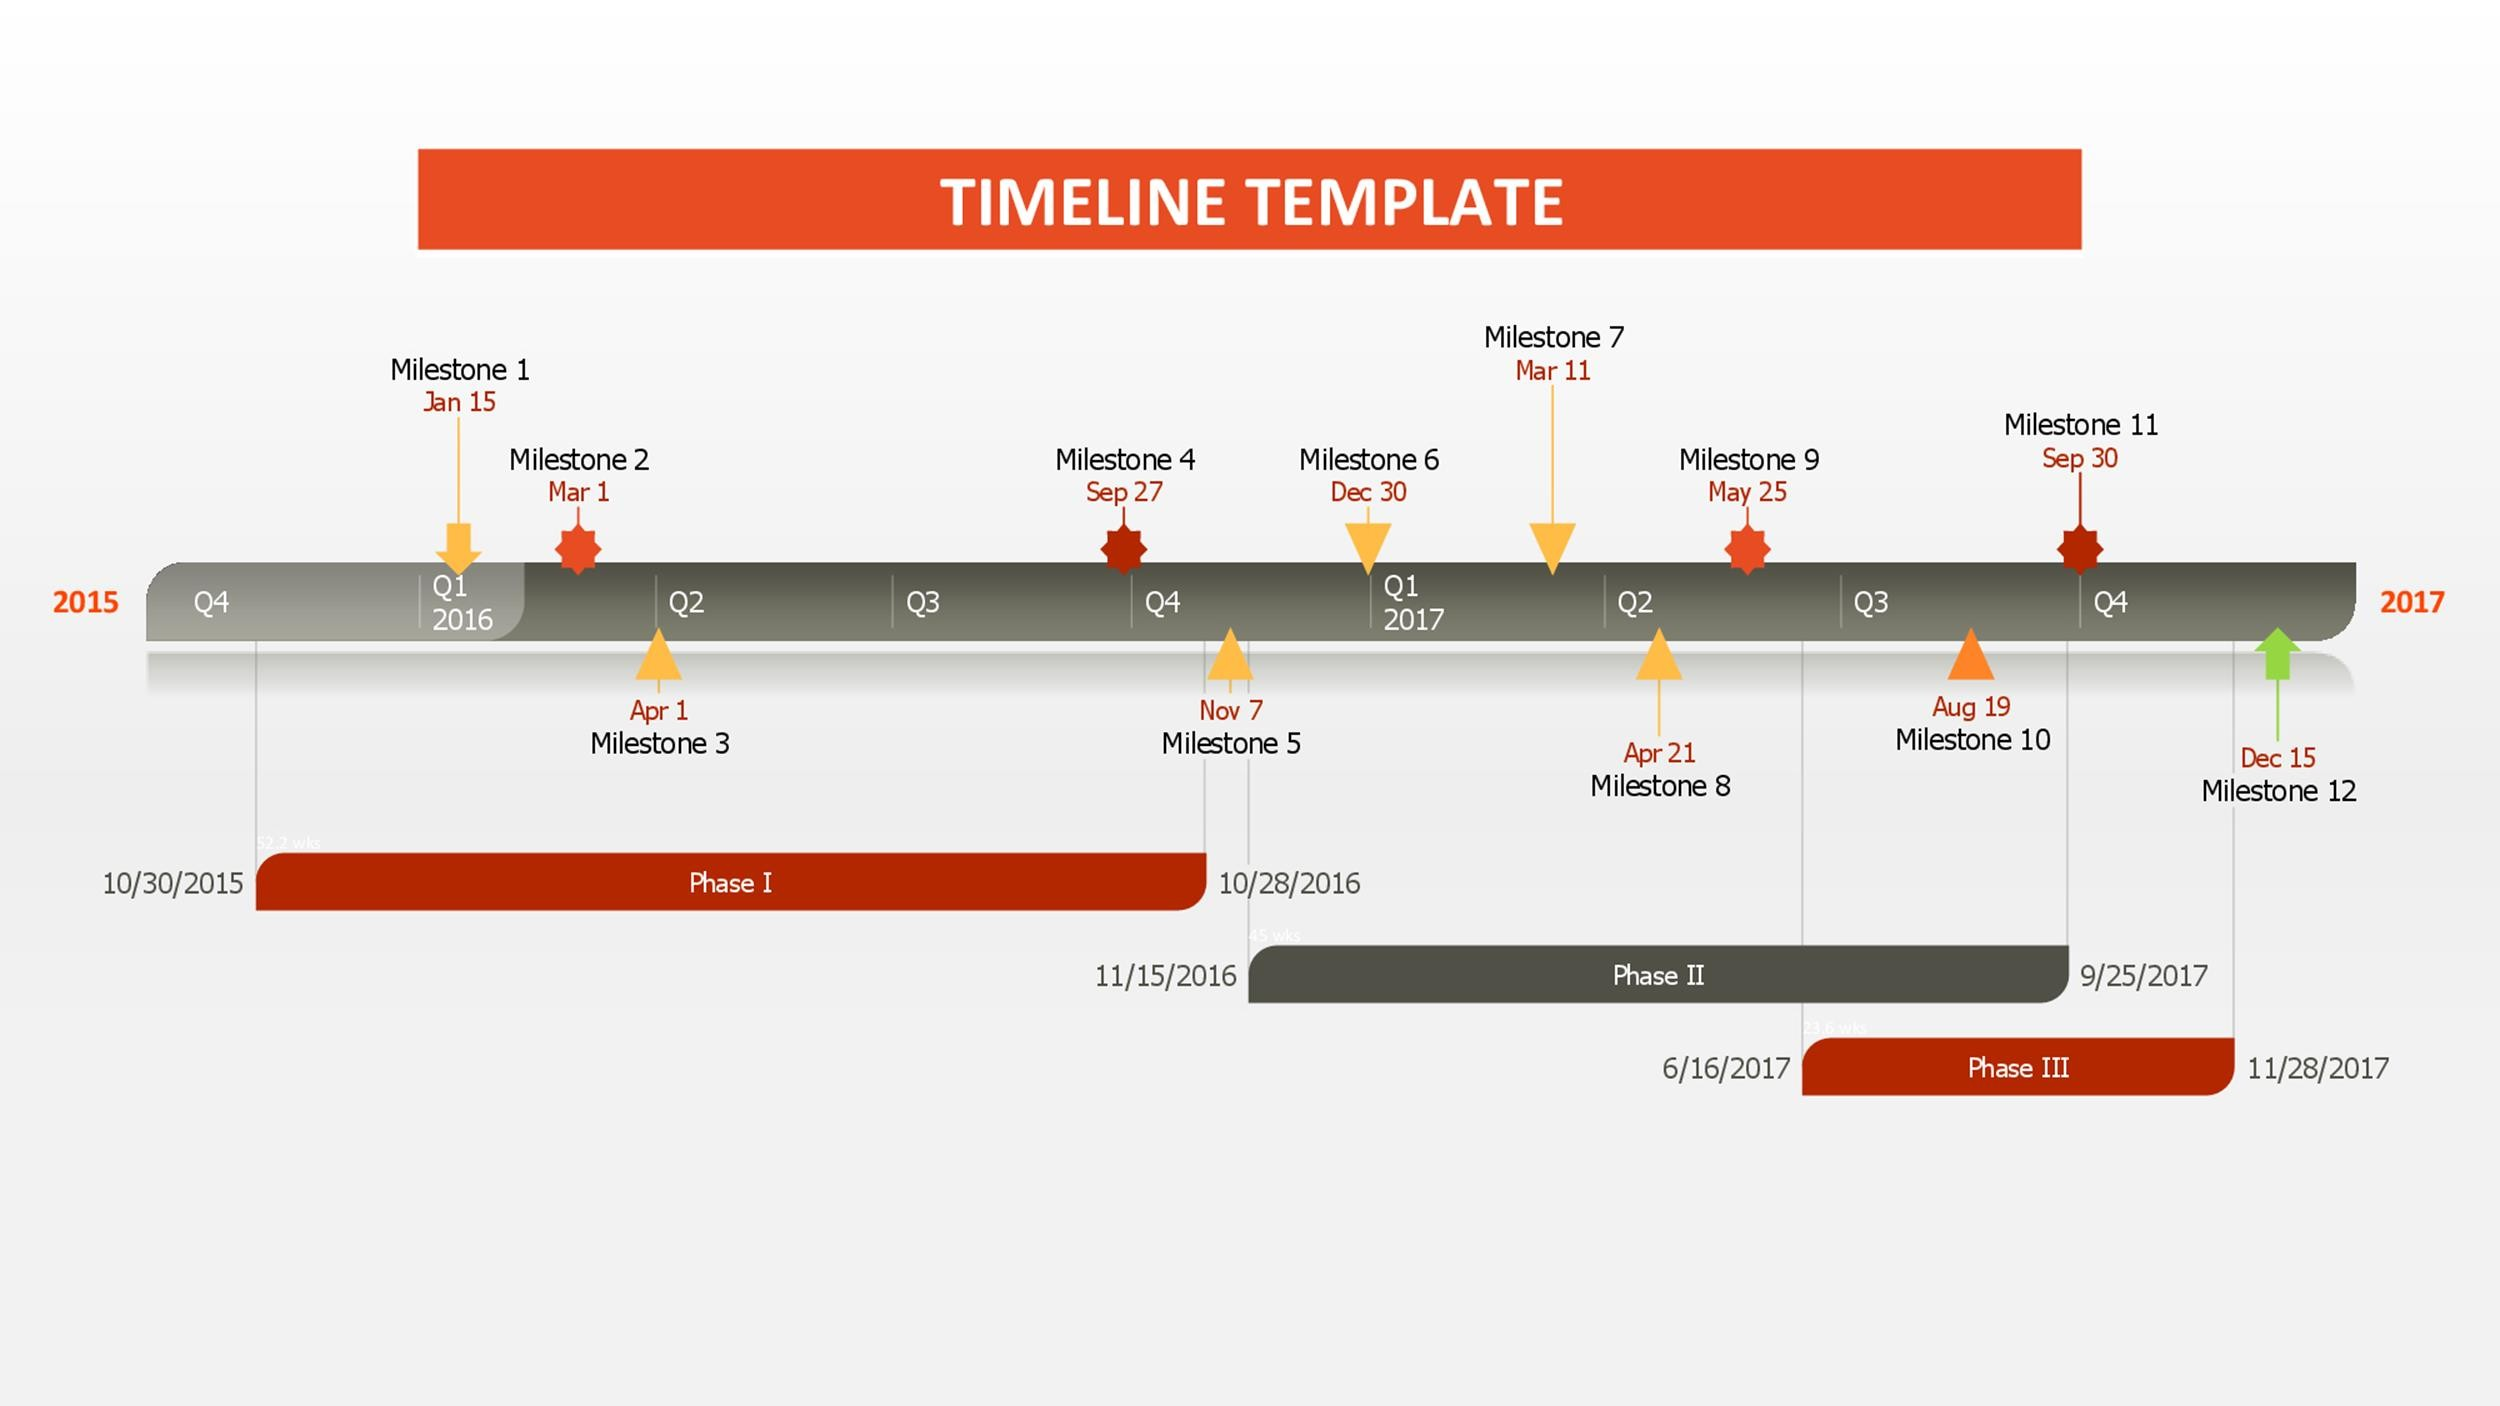 30 timeline templates excel power point word template lab printable timeline template 03 toneelgroepblik Image collections